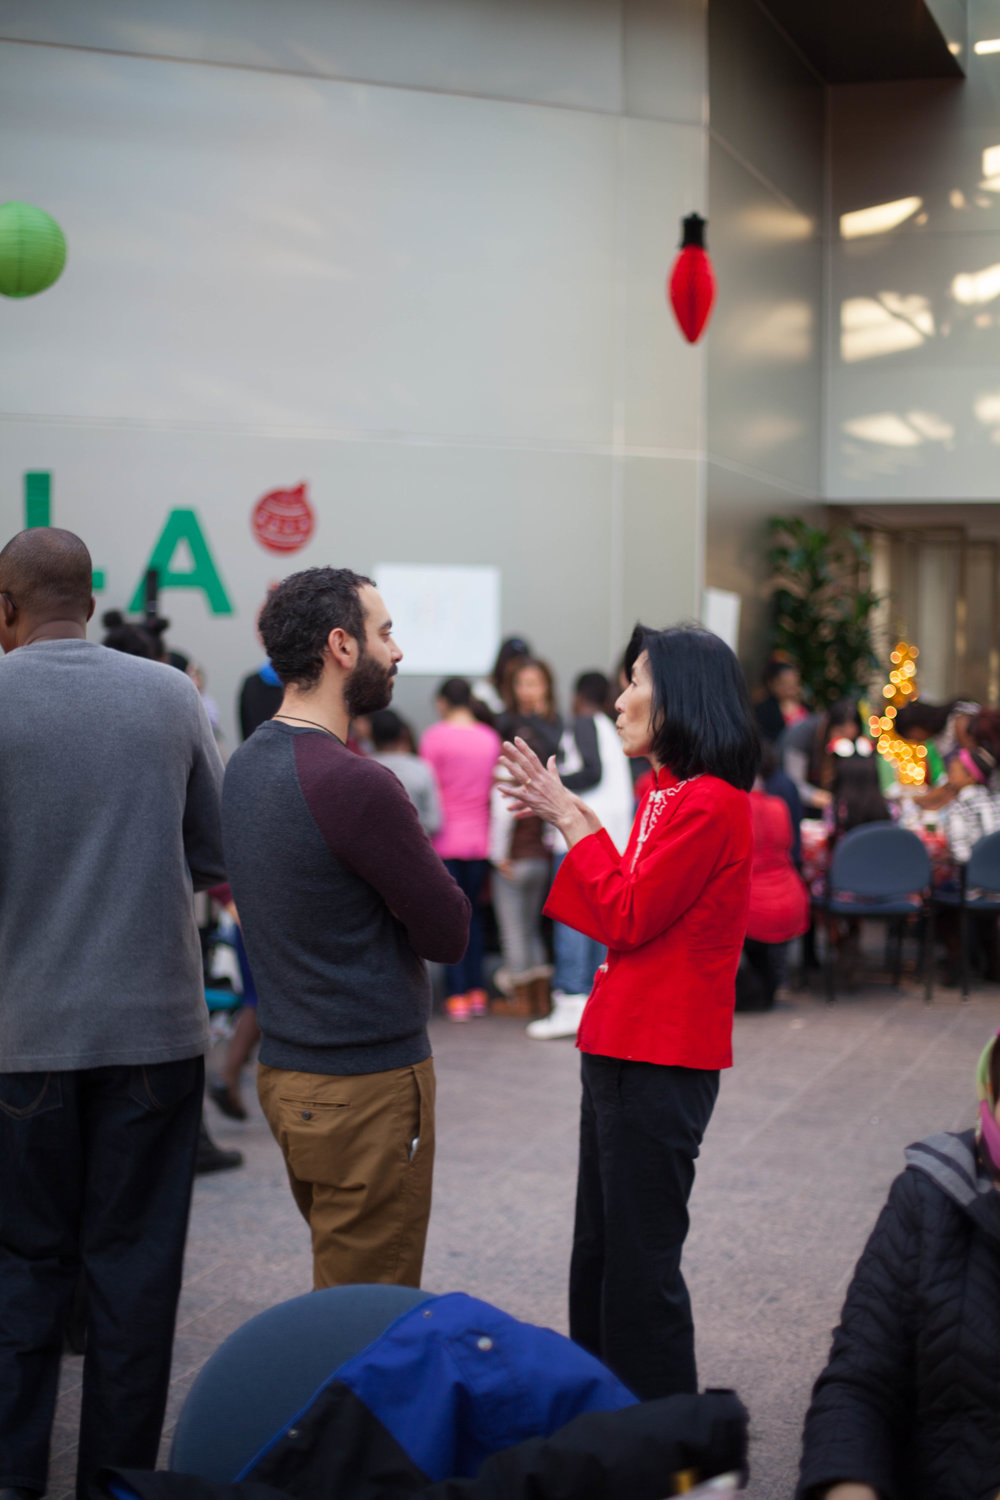 hope-holiday-party-2016_31604870495_o.jpg